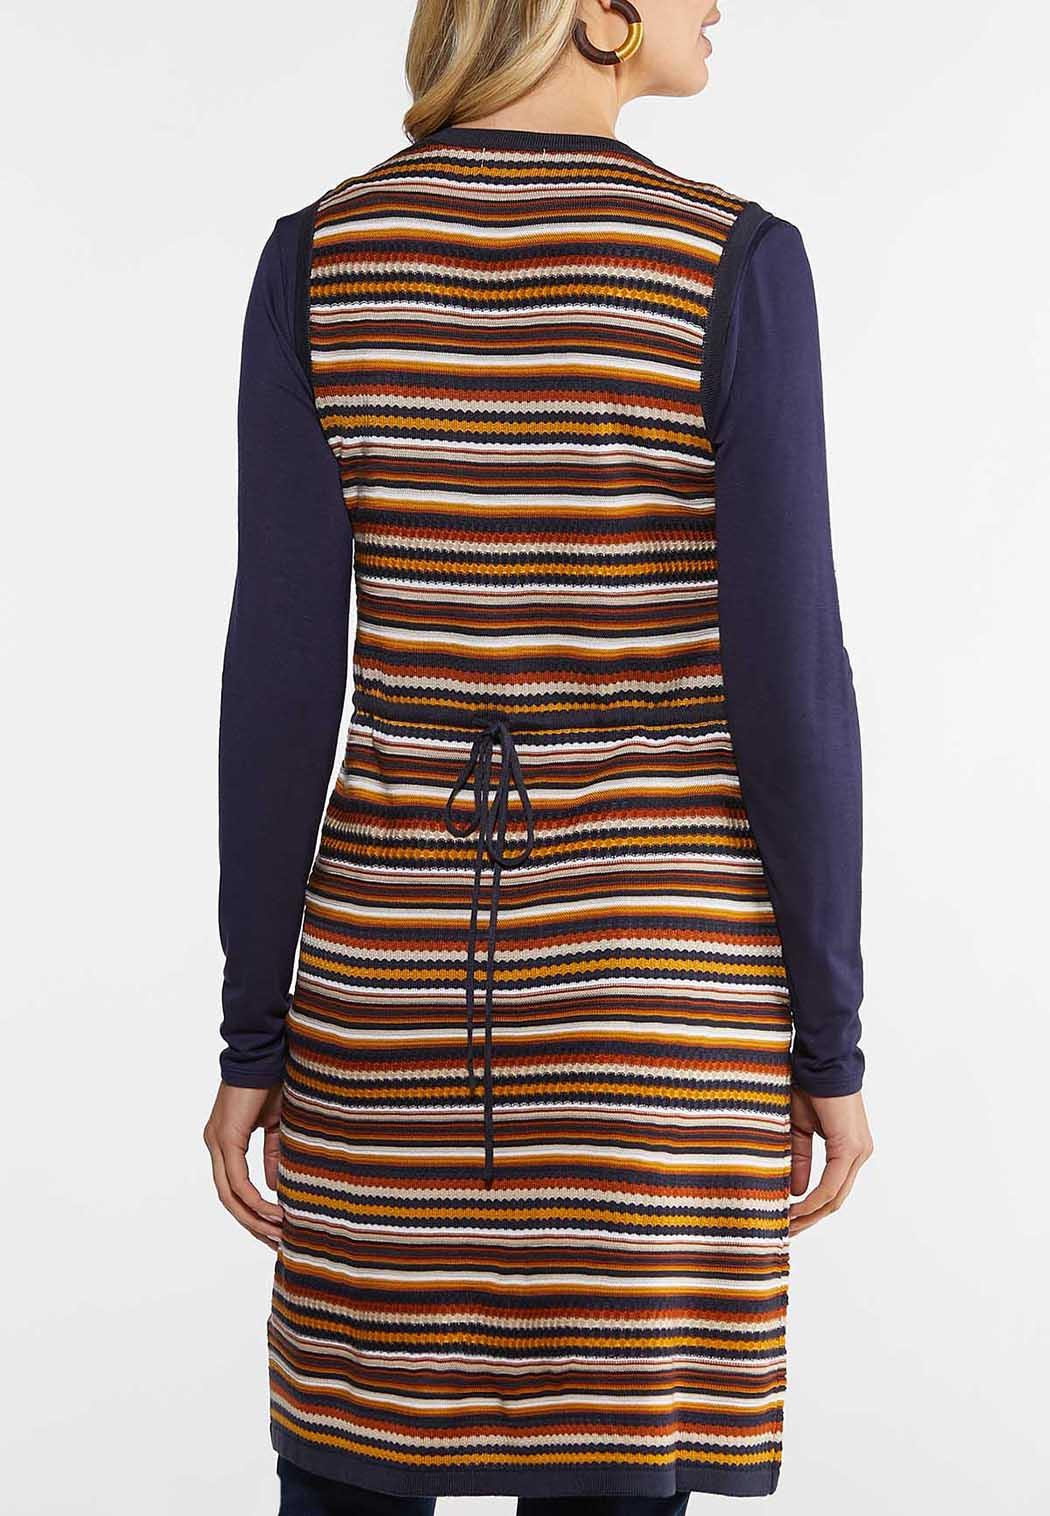 Plus Size Navy Stripe Vest (Item #43999779)